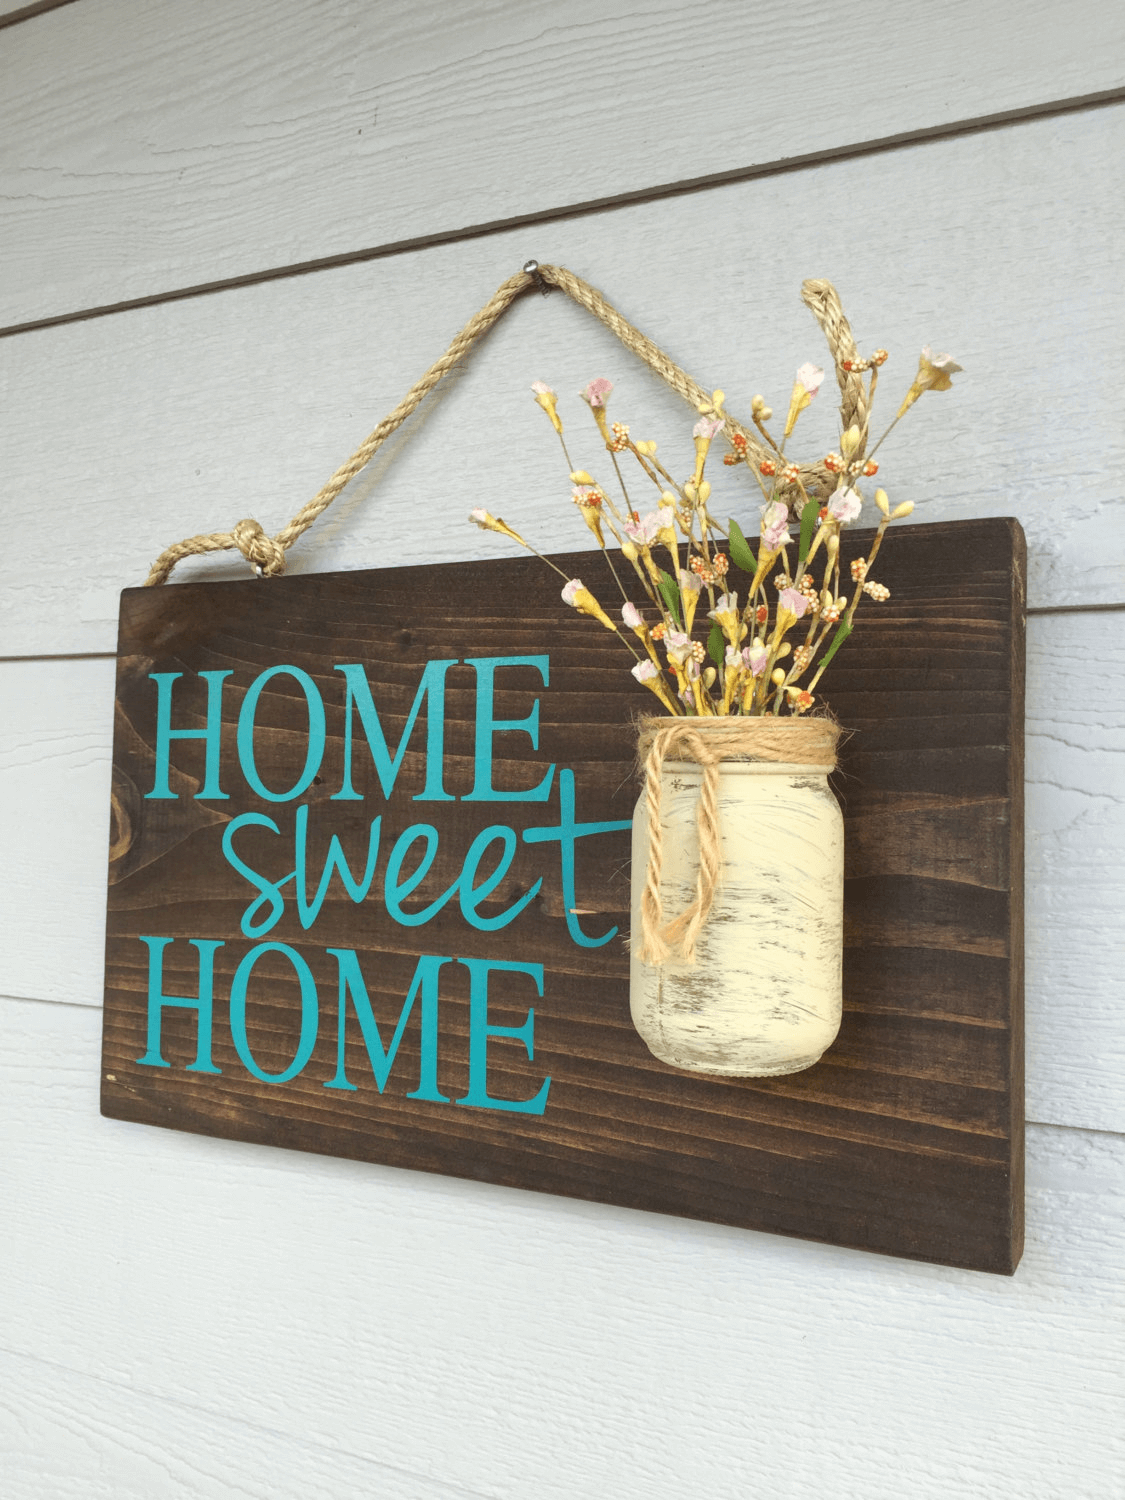 Rustic Home sweet home hanging sign decor ideas